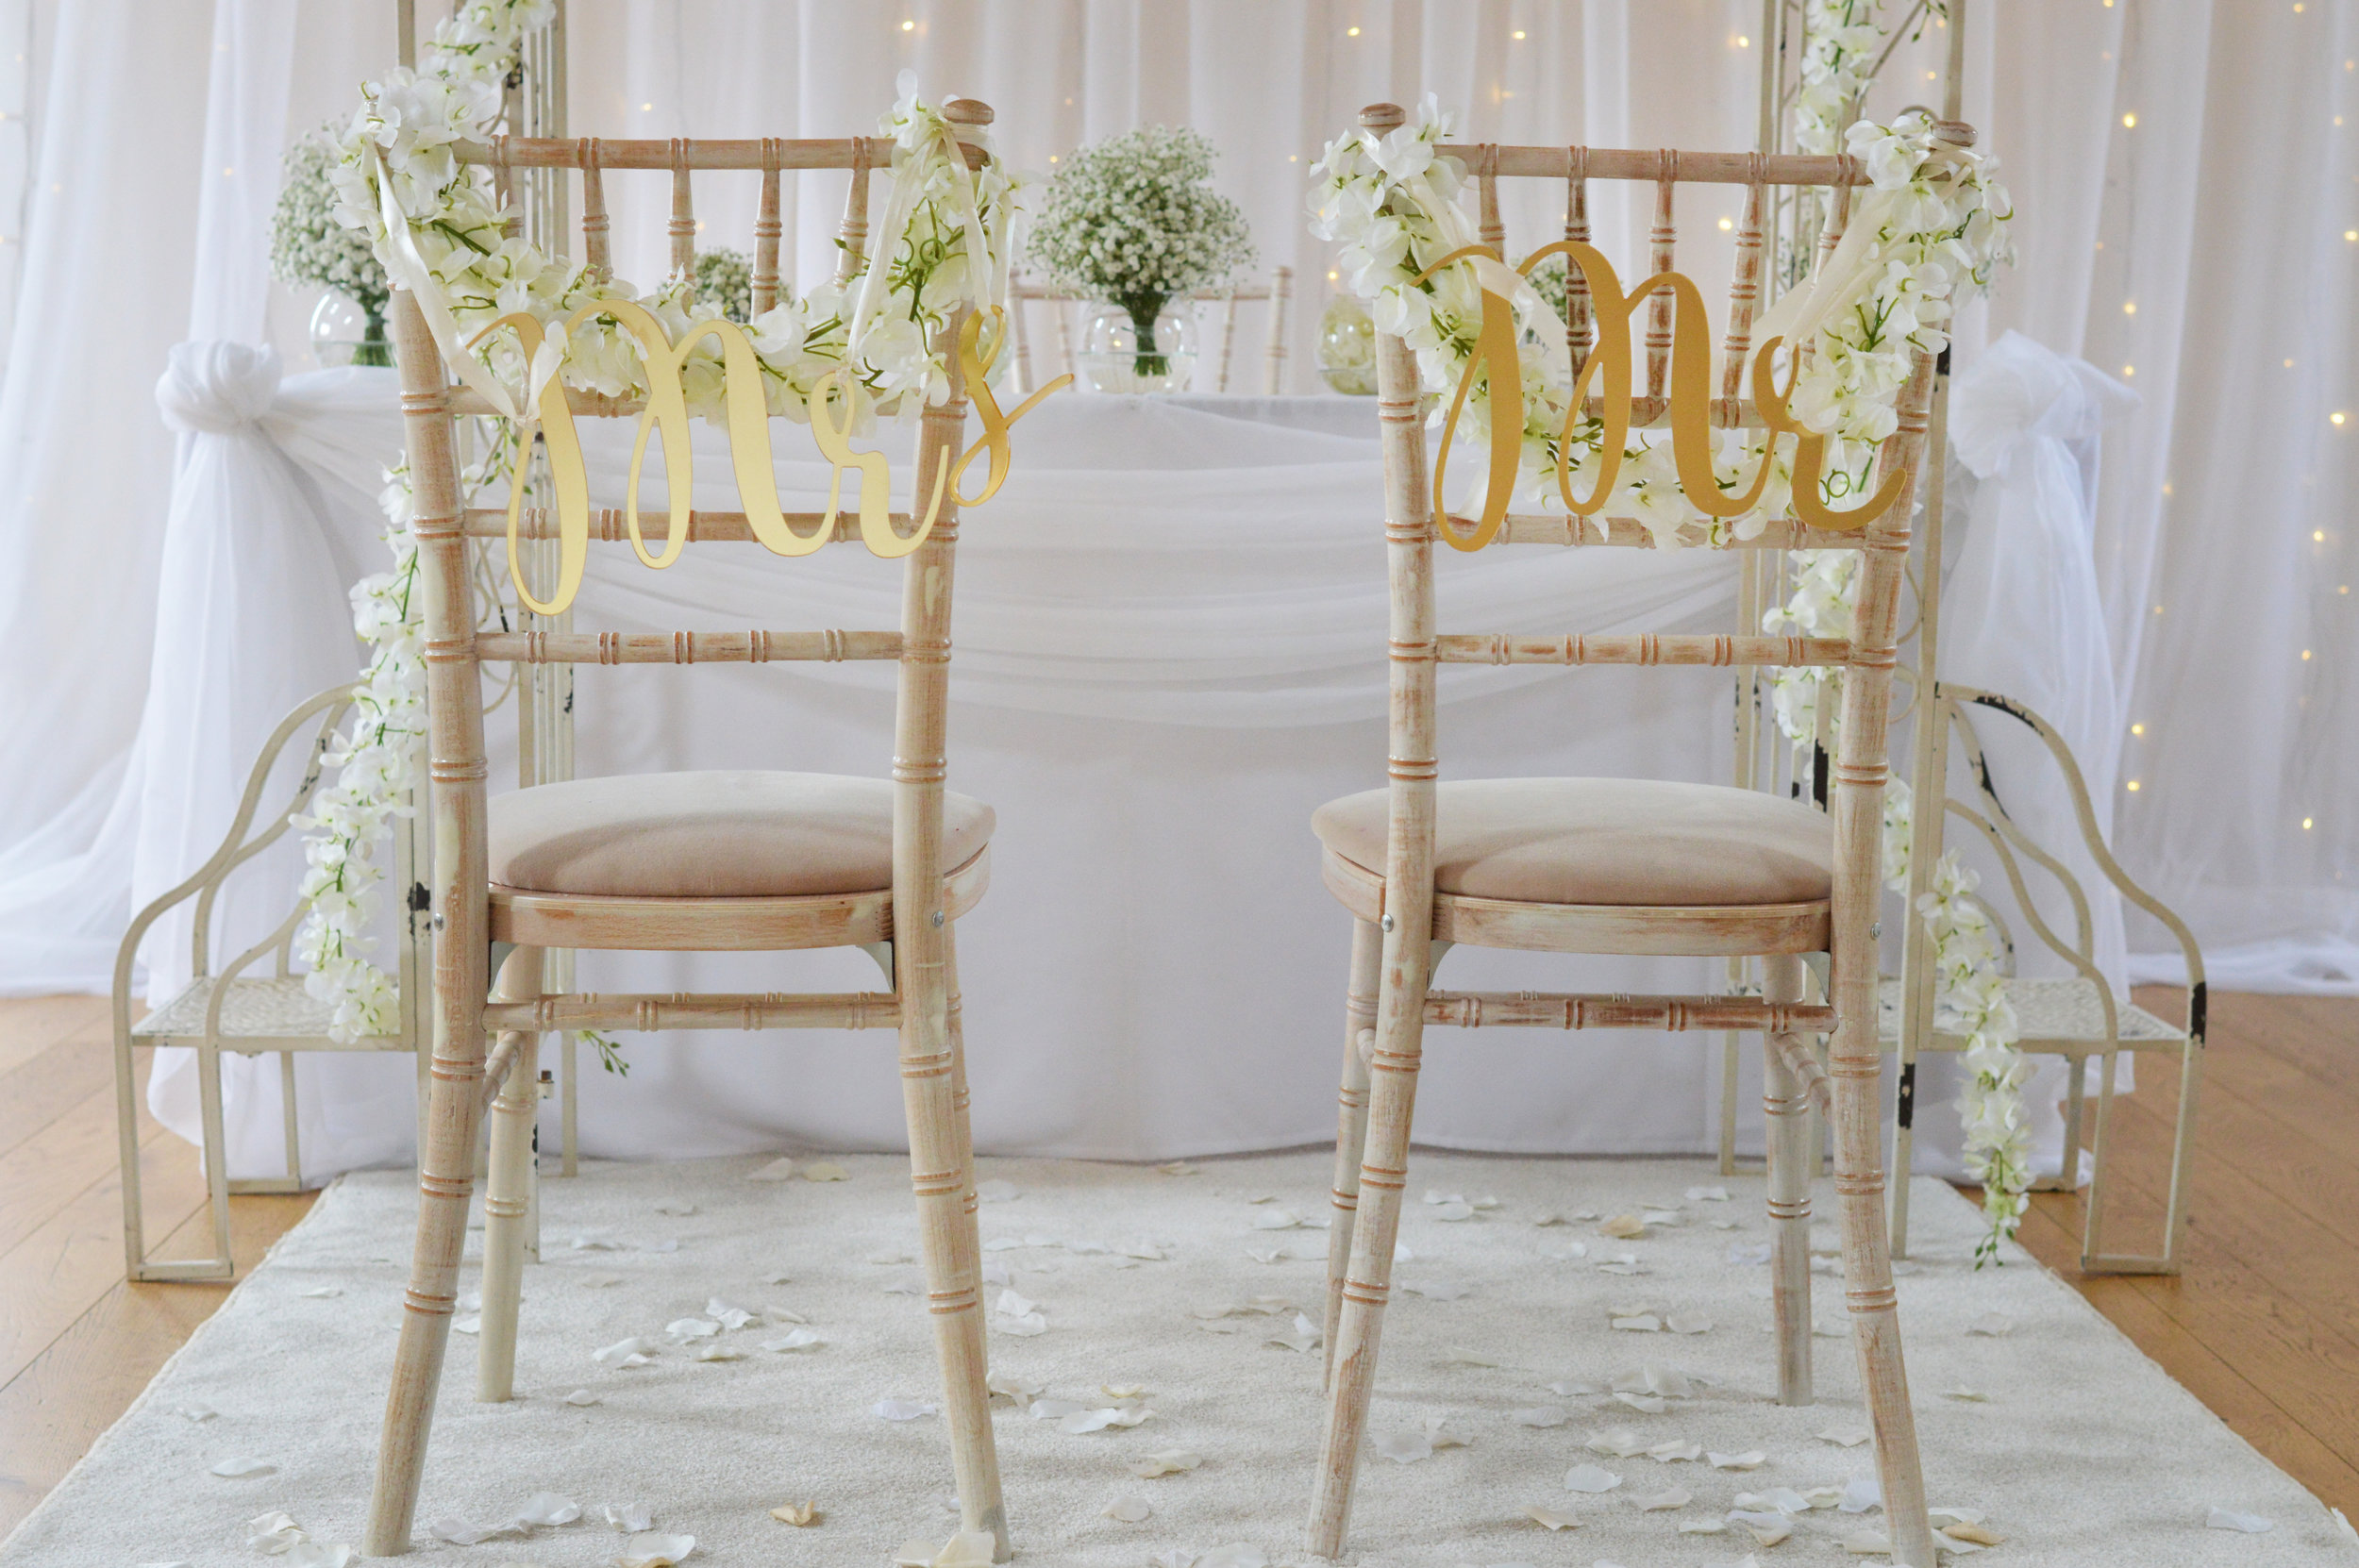 Mr & Mrs on chair with flowers